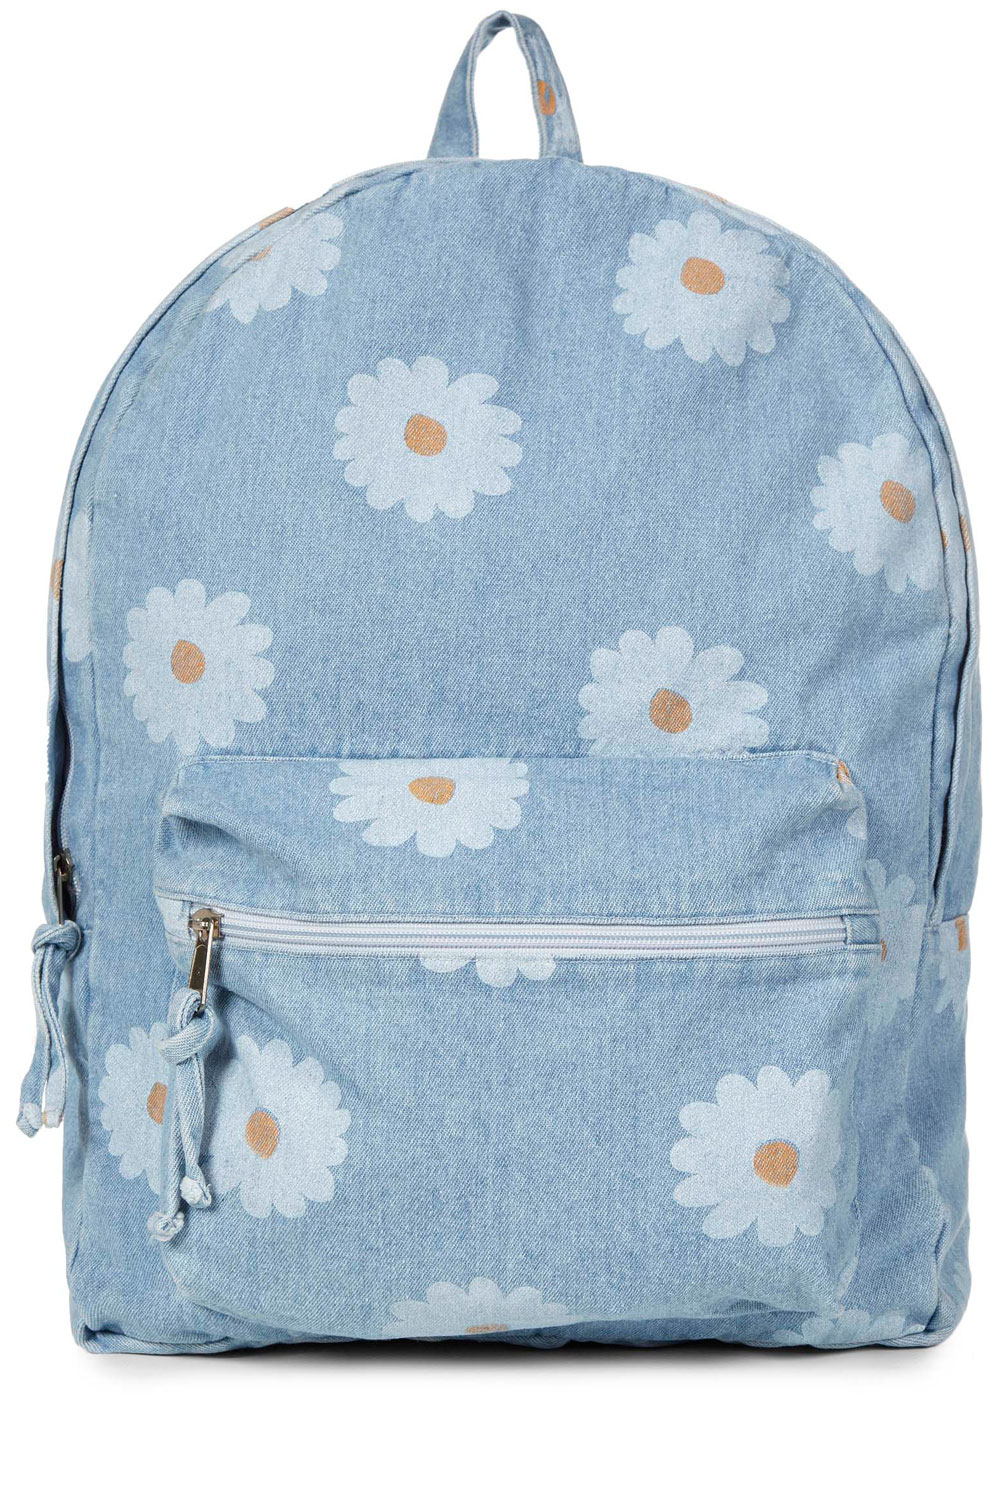 Primark SS14 Collection: Preview The New Range Now